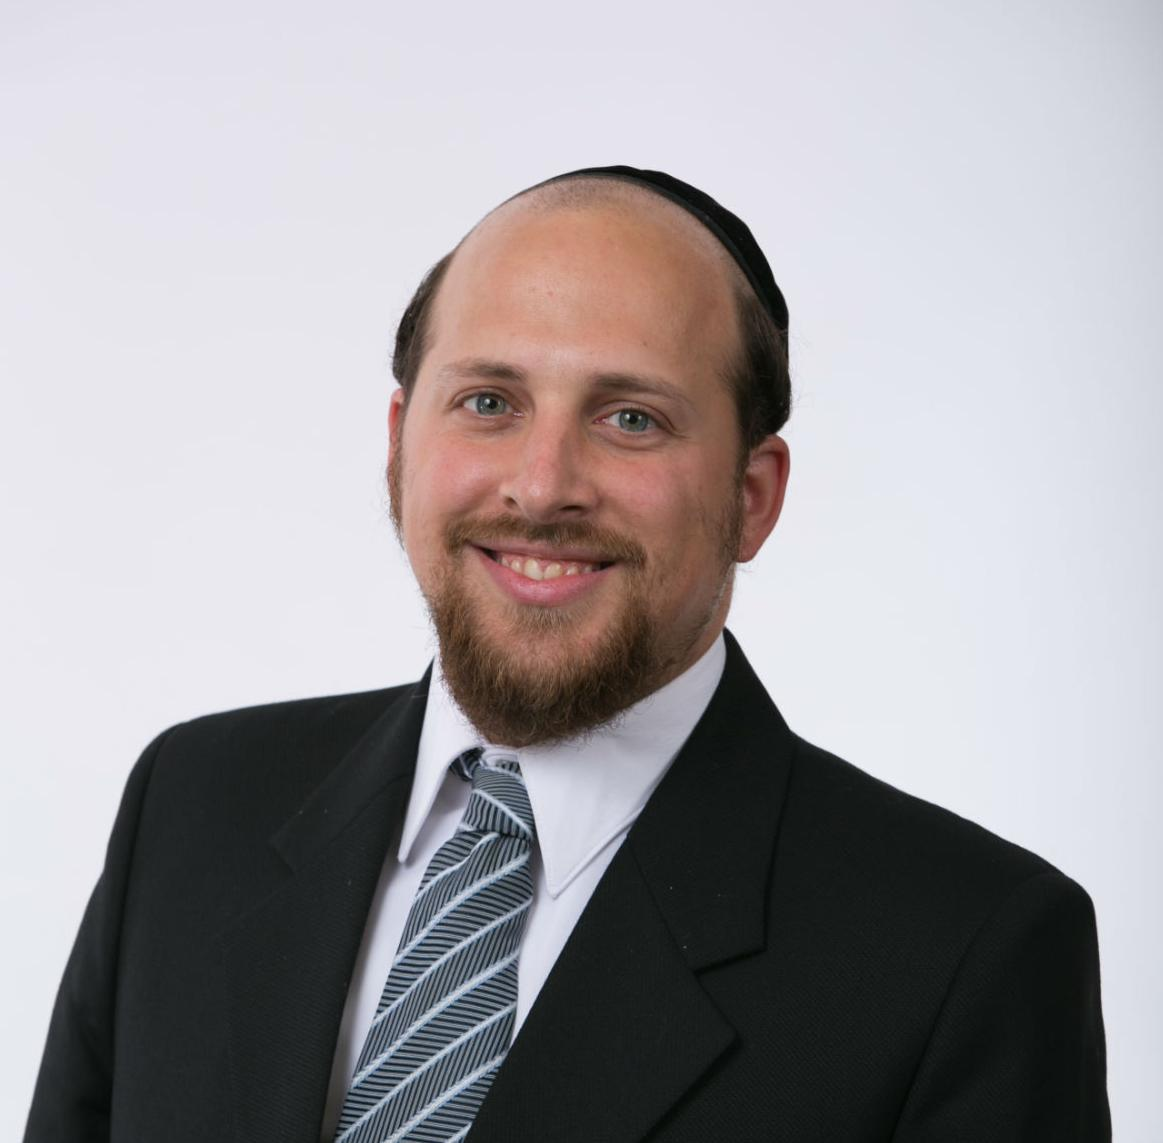 Shulem Rosenbaum, an alumnus of the Lander College of Arts and Sciences-Flatbush, was a winner of the 2014 Elijah Watt Sells award bestowed upon the nation's top scorers on the Uniform CPA examination.